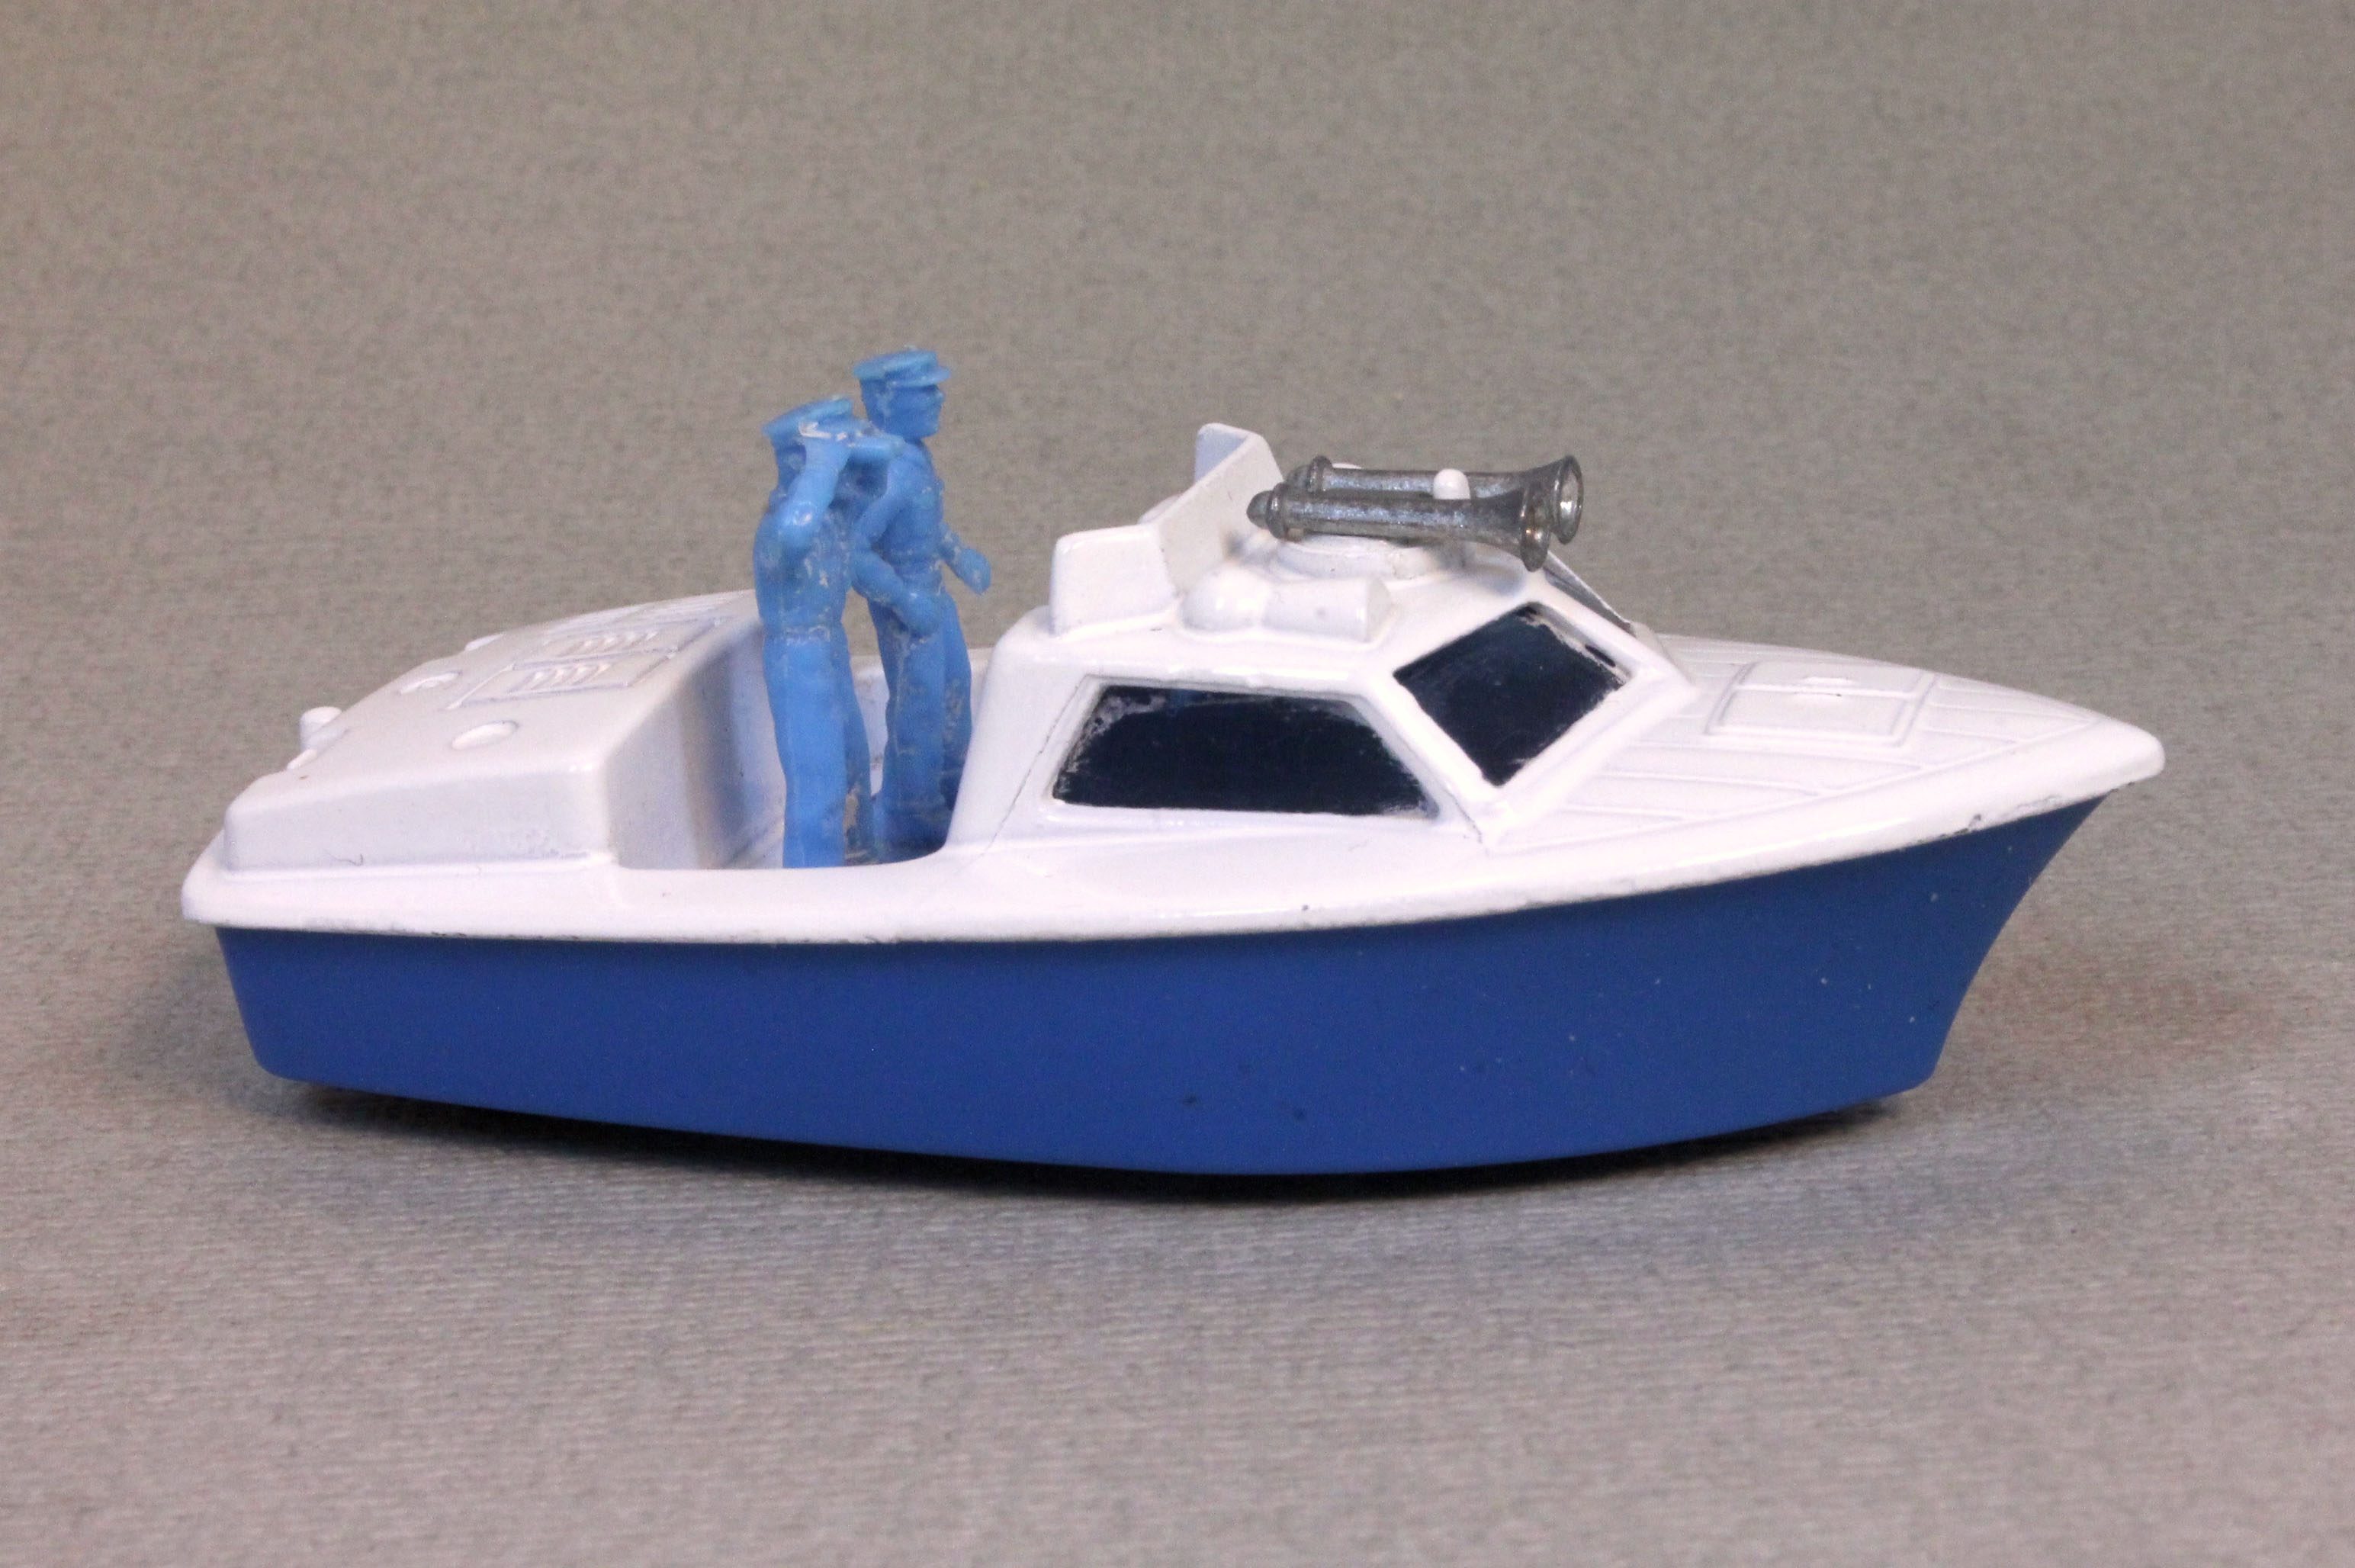 Lesney SuperFast 52 B 1 - Police Launch white and blue blue fig with horns no labels